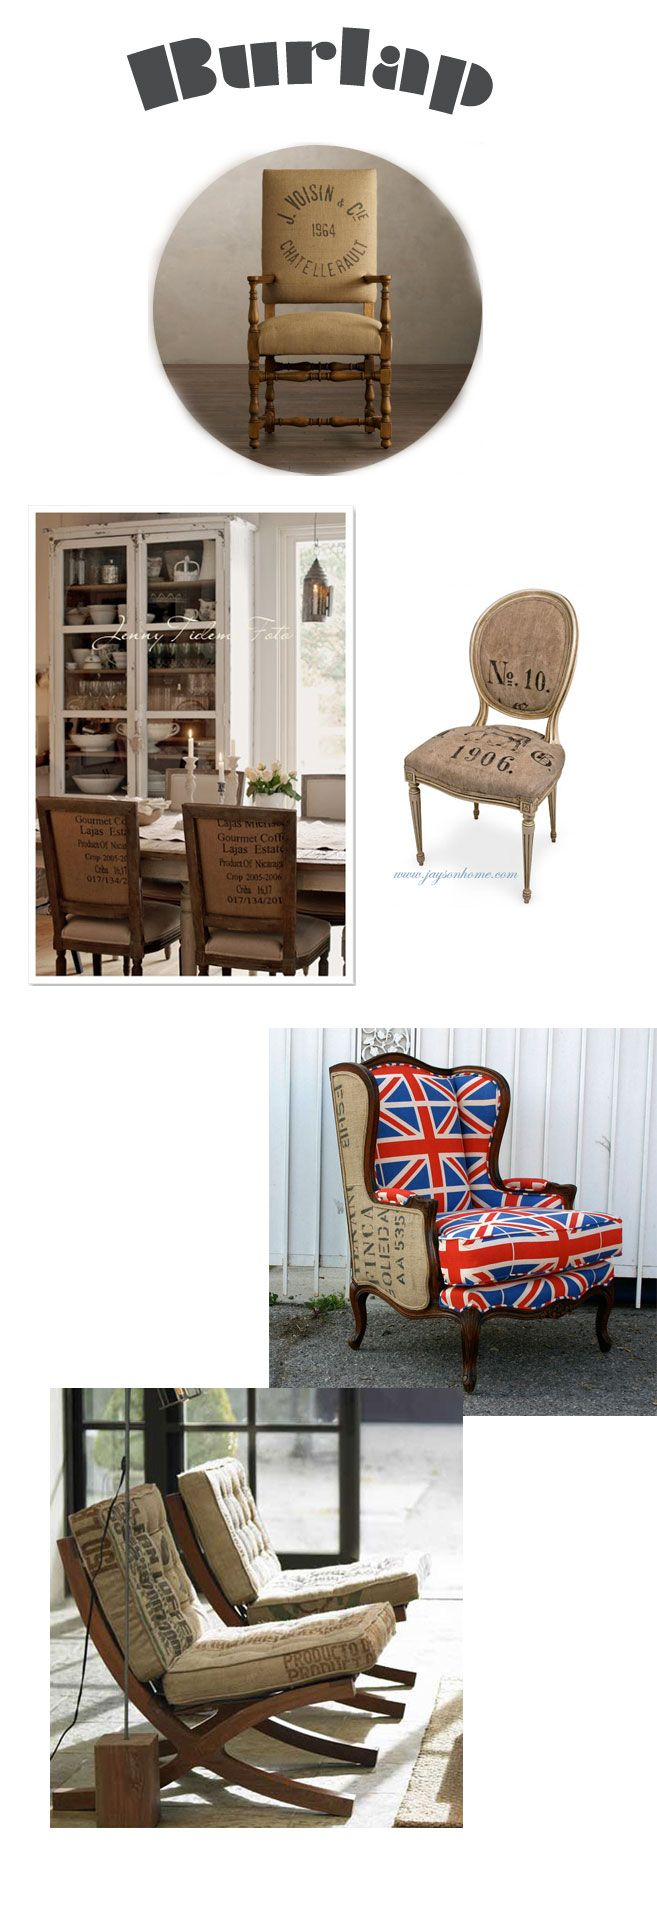 Burlap sack chairs, from The Art of Doing Stuff.